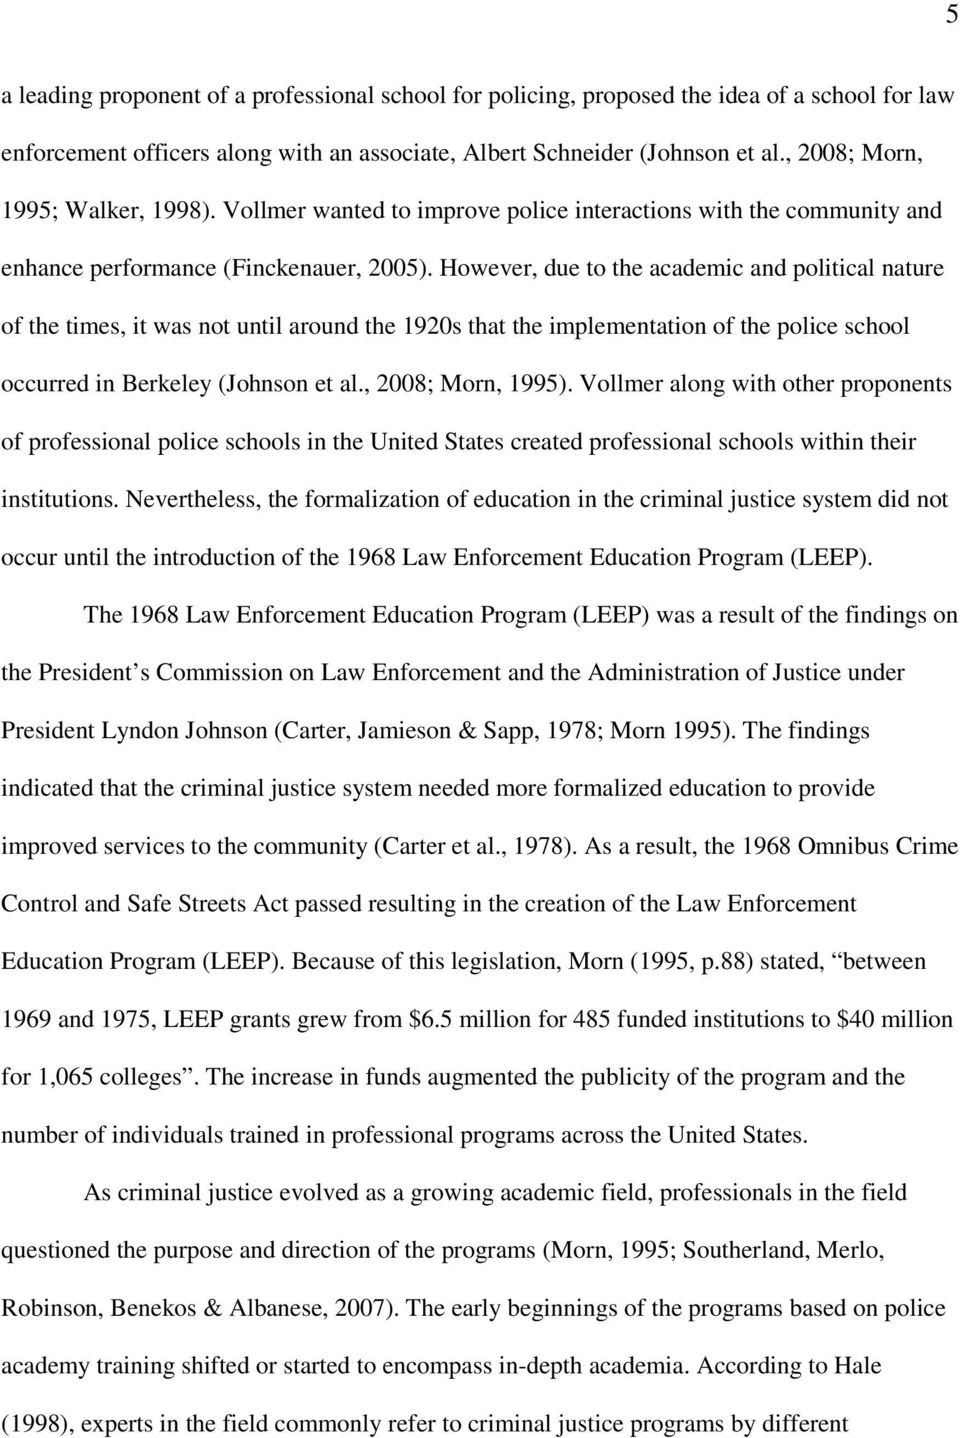 However, due to the academic and political nature of the times, it was not until around the 1920s that the implementation of the police school occurred in Berkeley (Johnson et al., 2008; Morn, 1995).